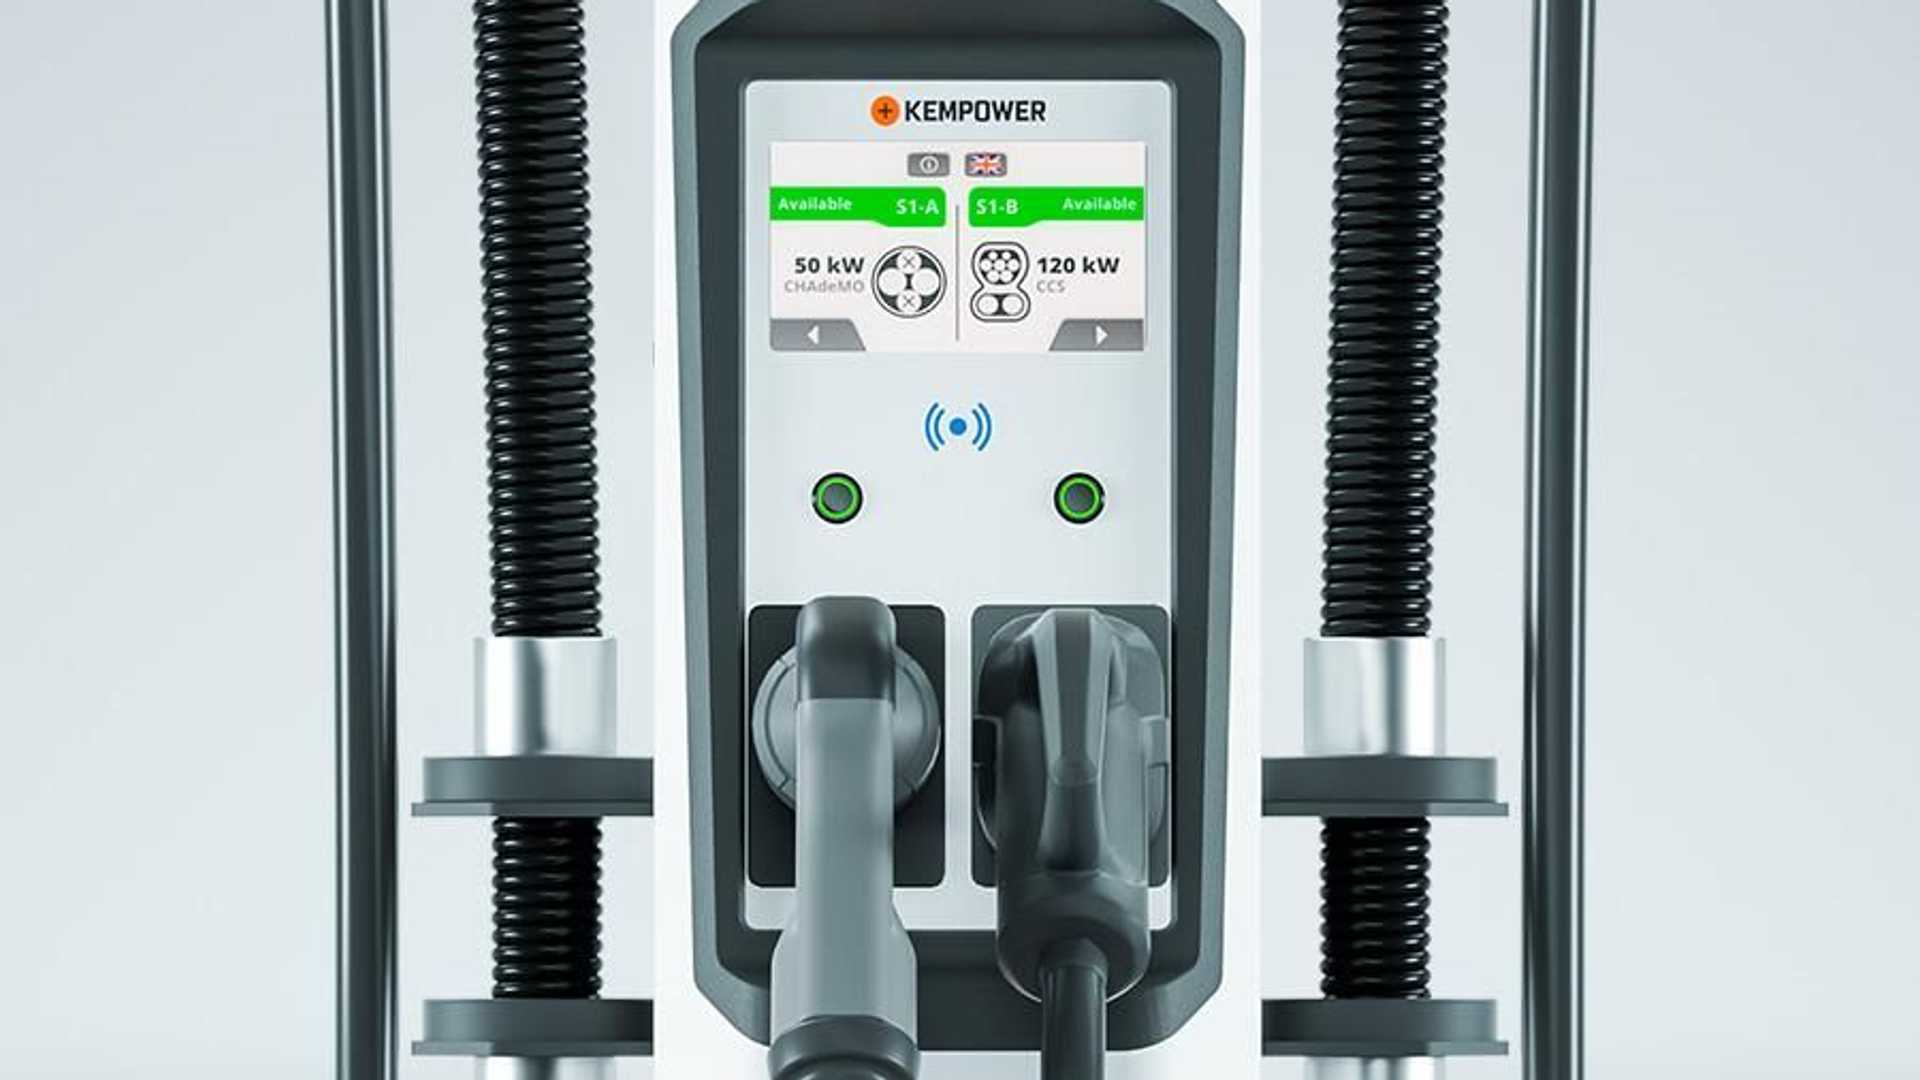 Kempower S-series charging system